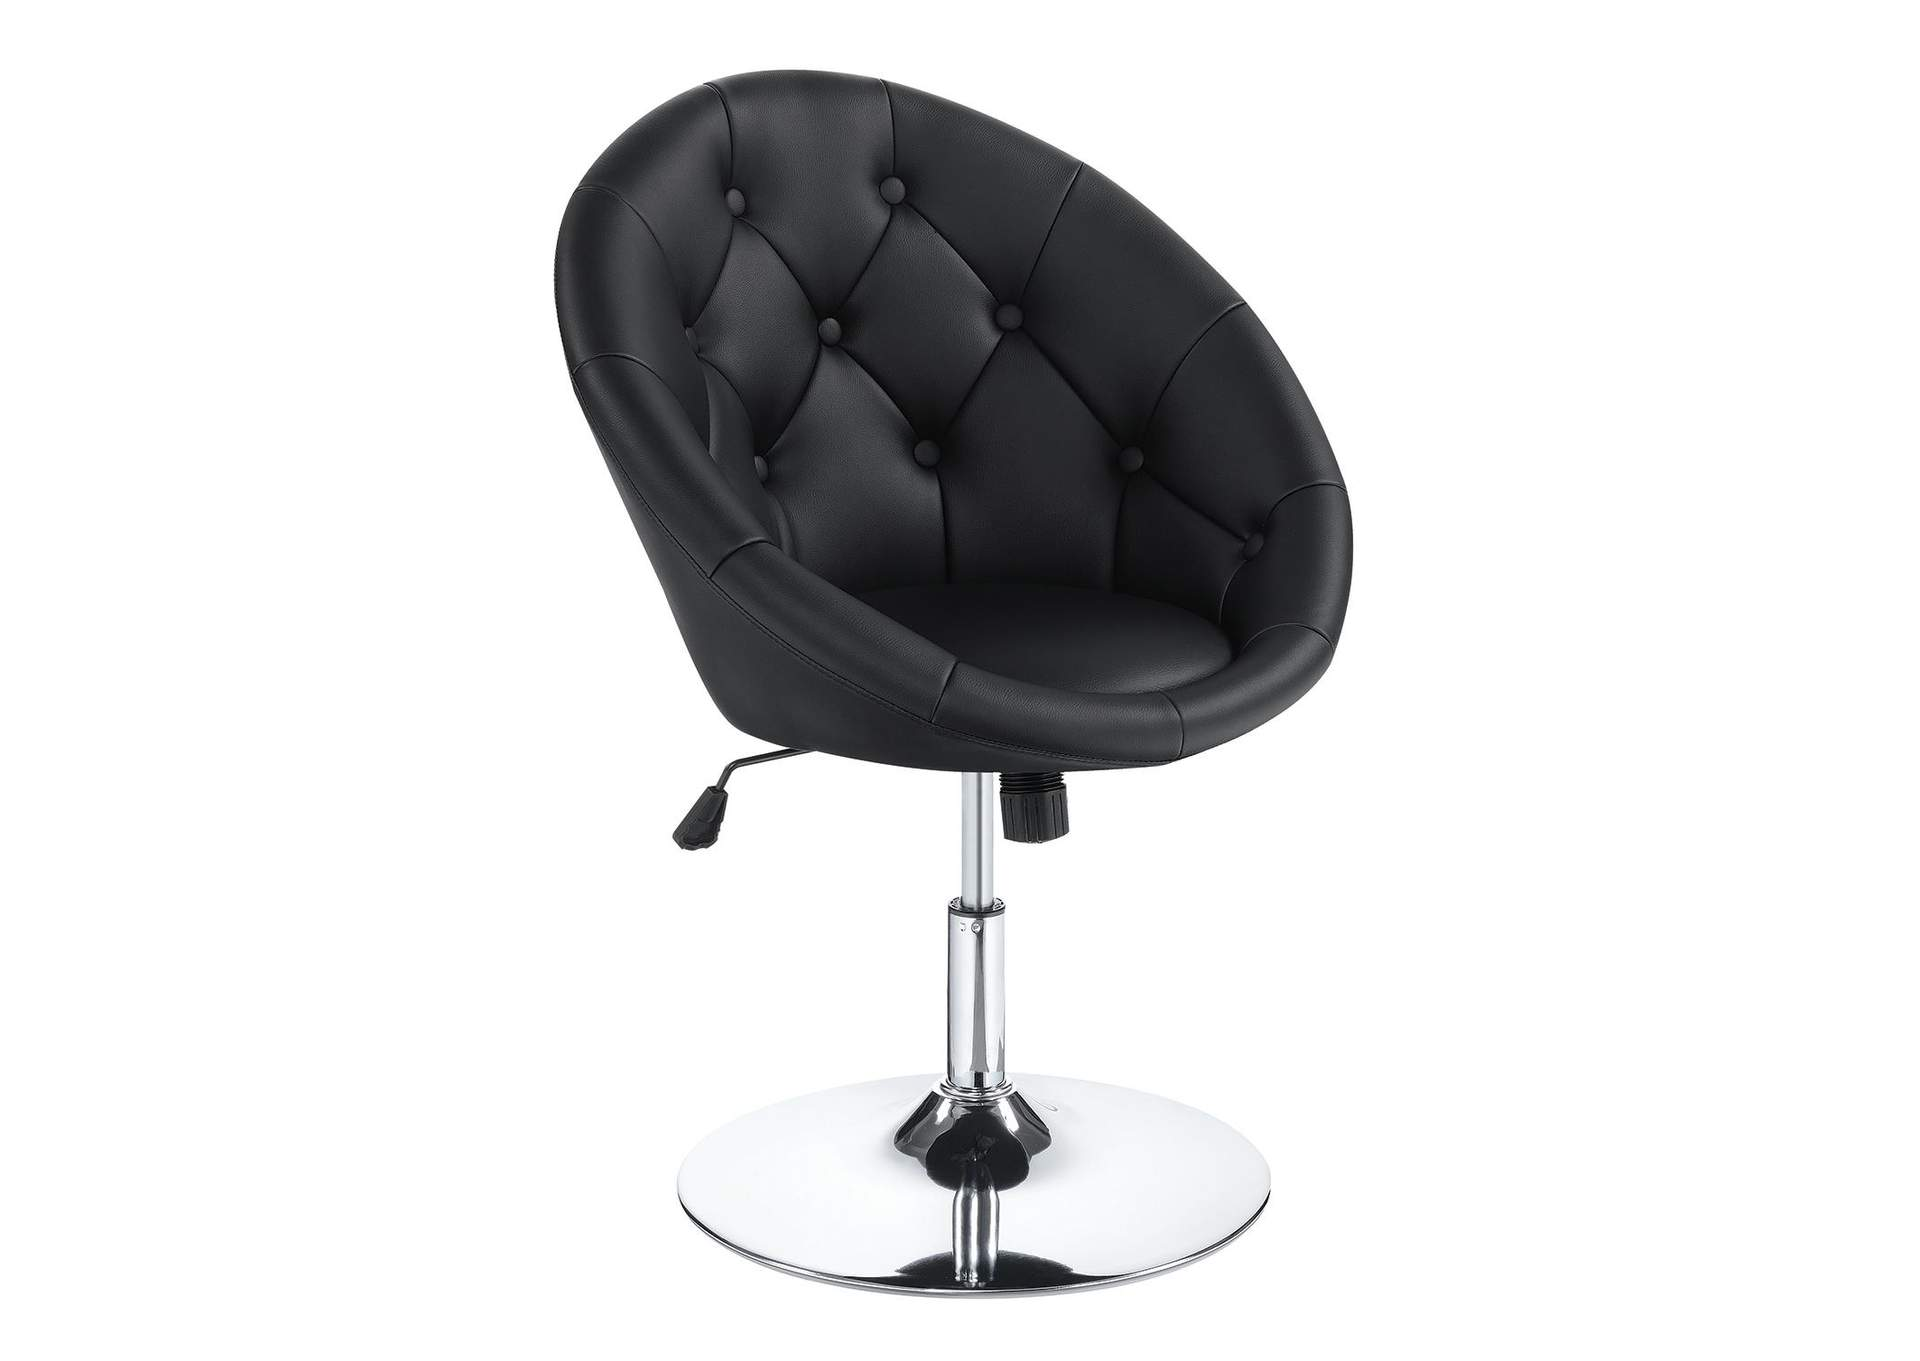 Chrome Contemporary Black Faux Leather Swivel Accent Chair 22 Furniture Gallery